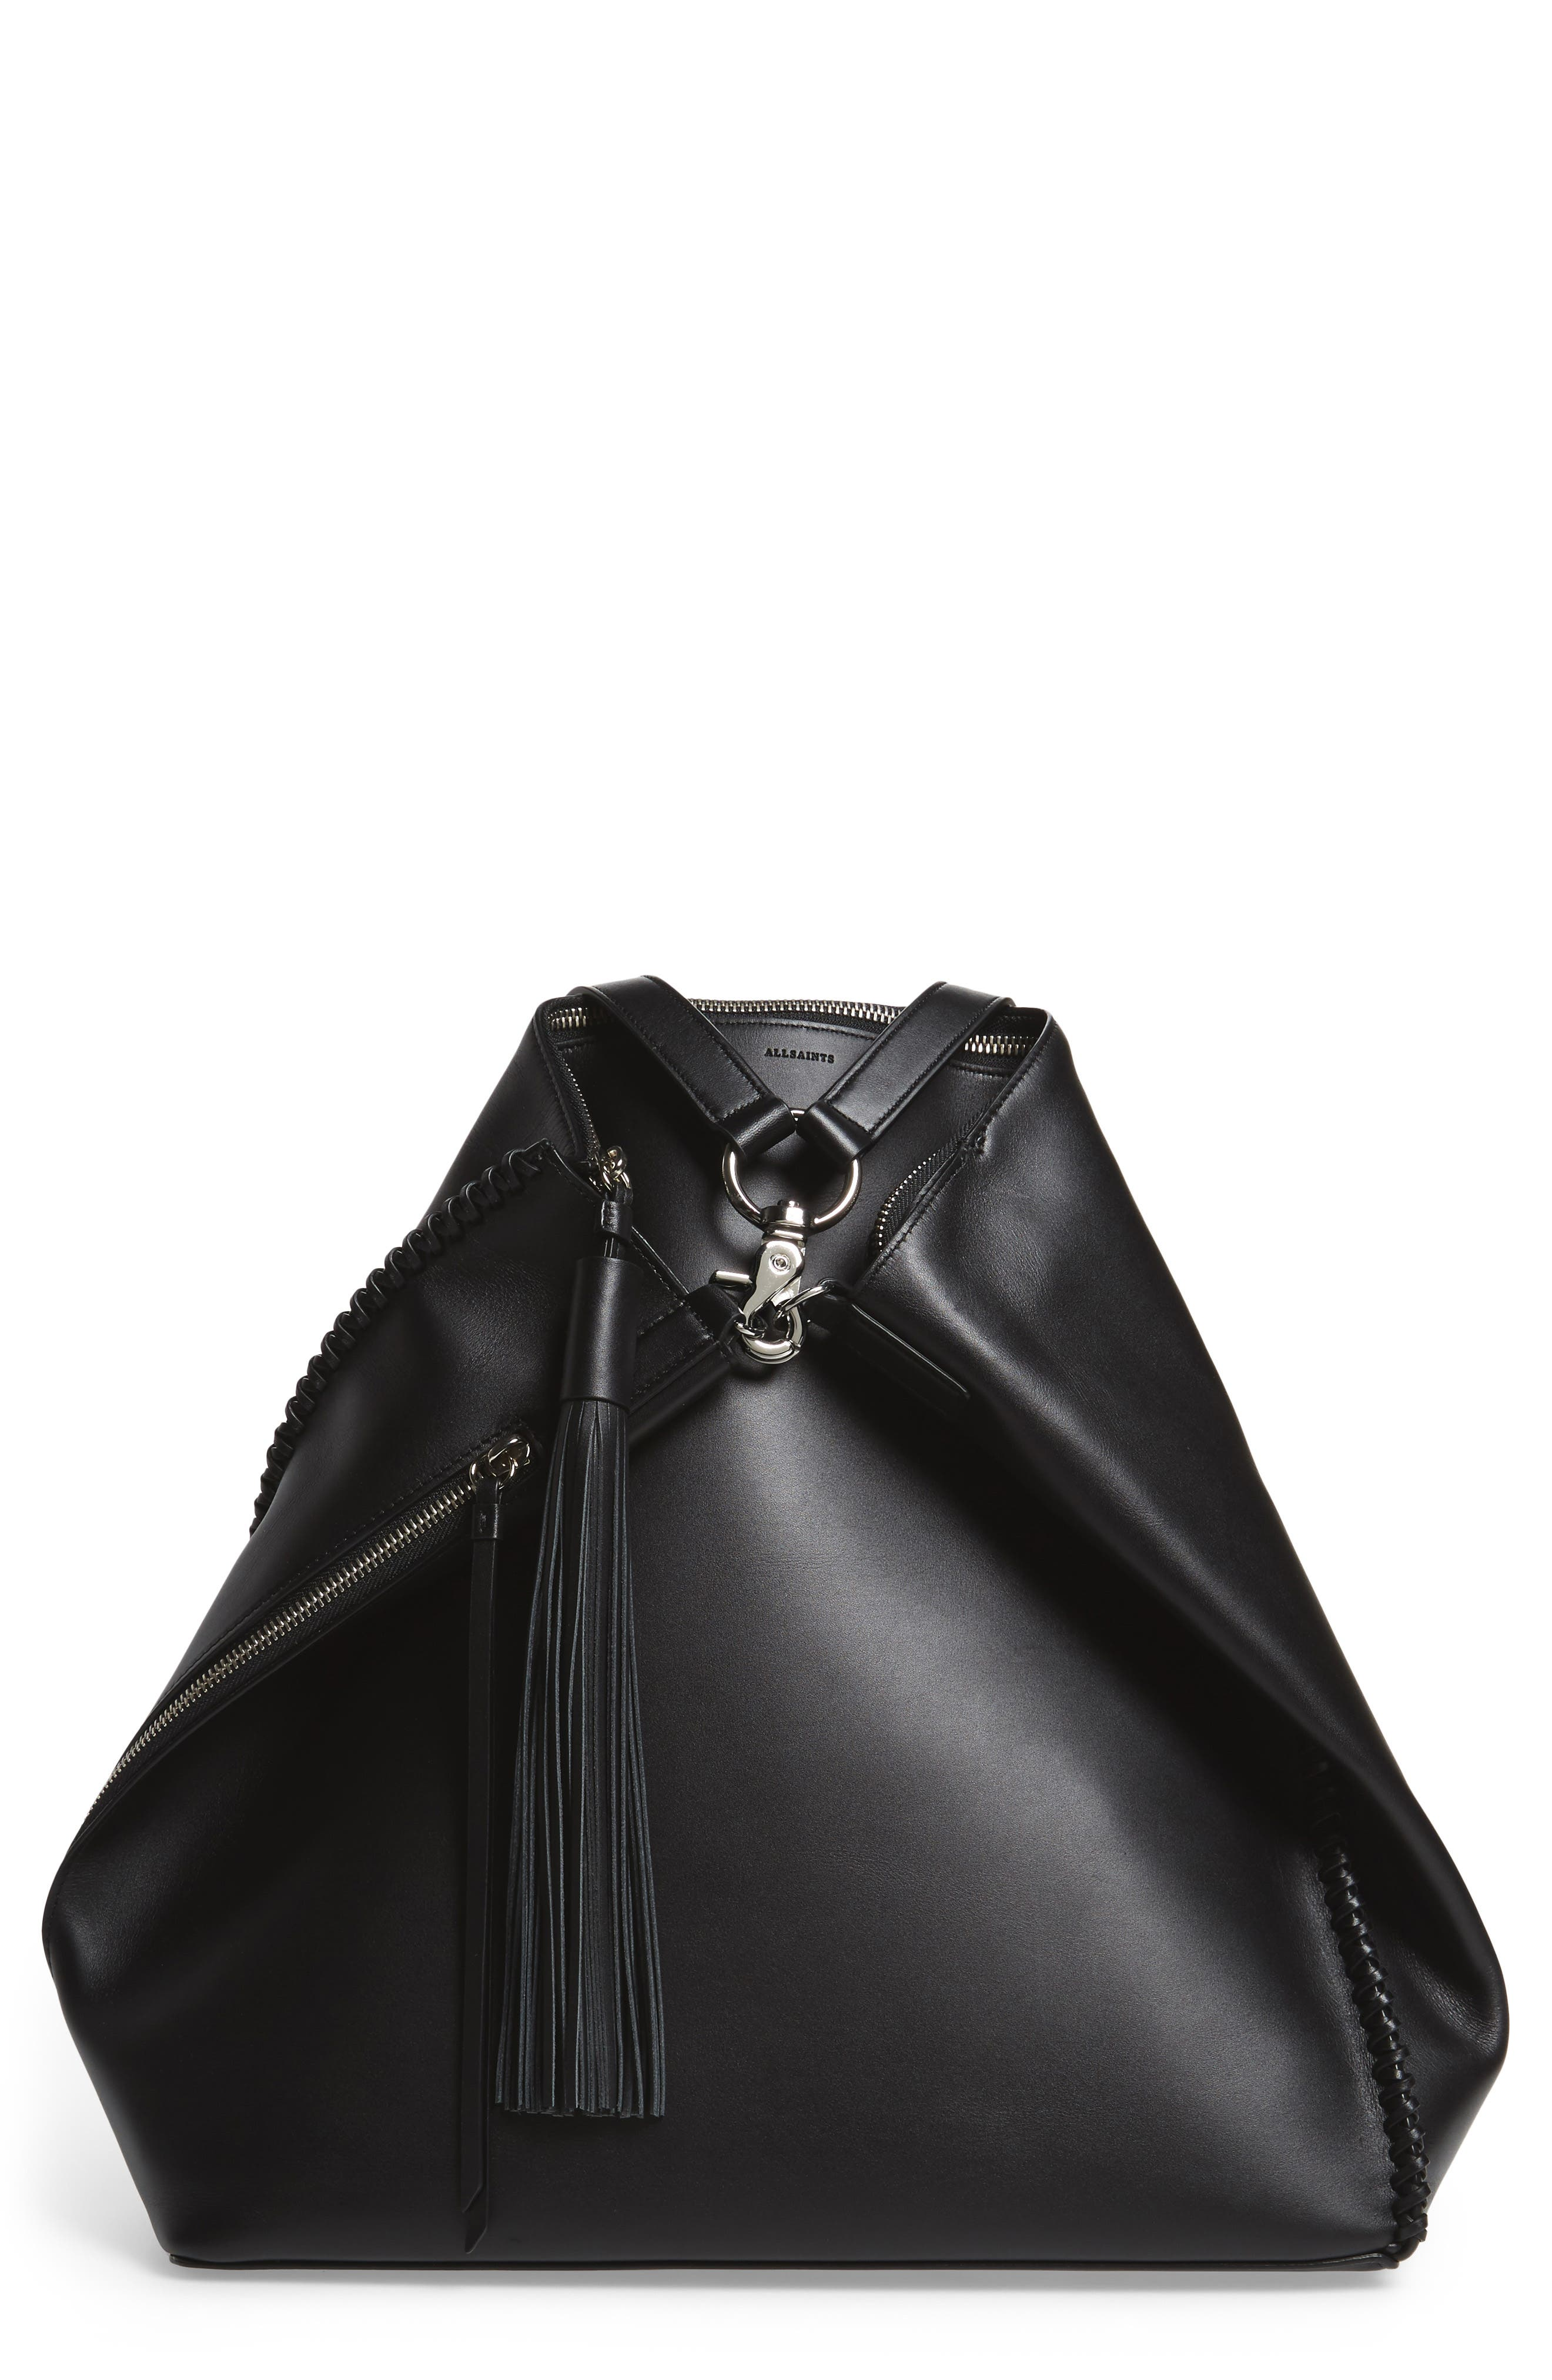 Pearl Convertible Leather Backpack,                             Alternate thumbnail 10, color,                             Black